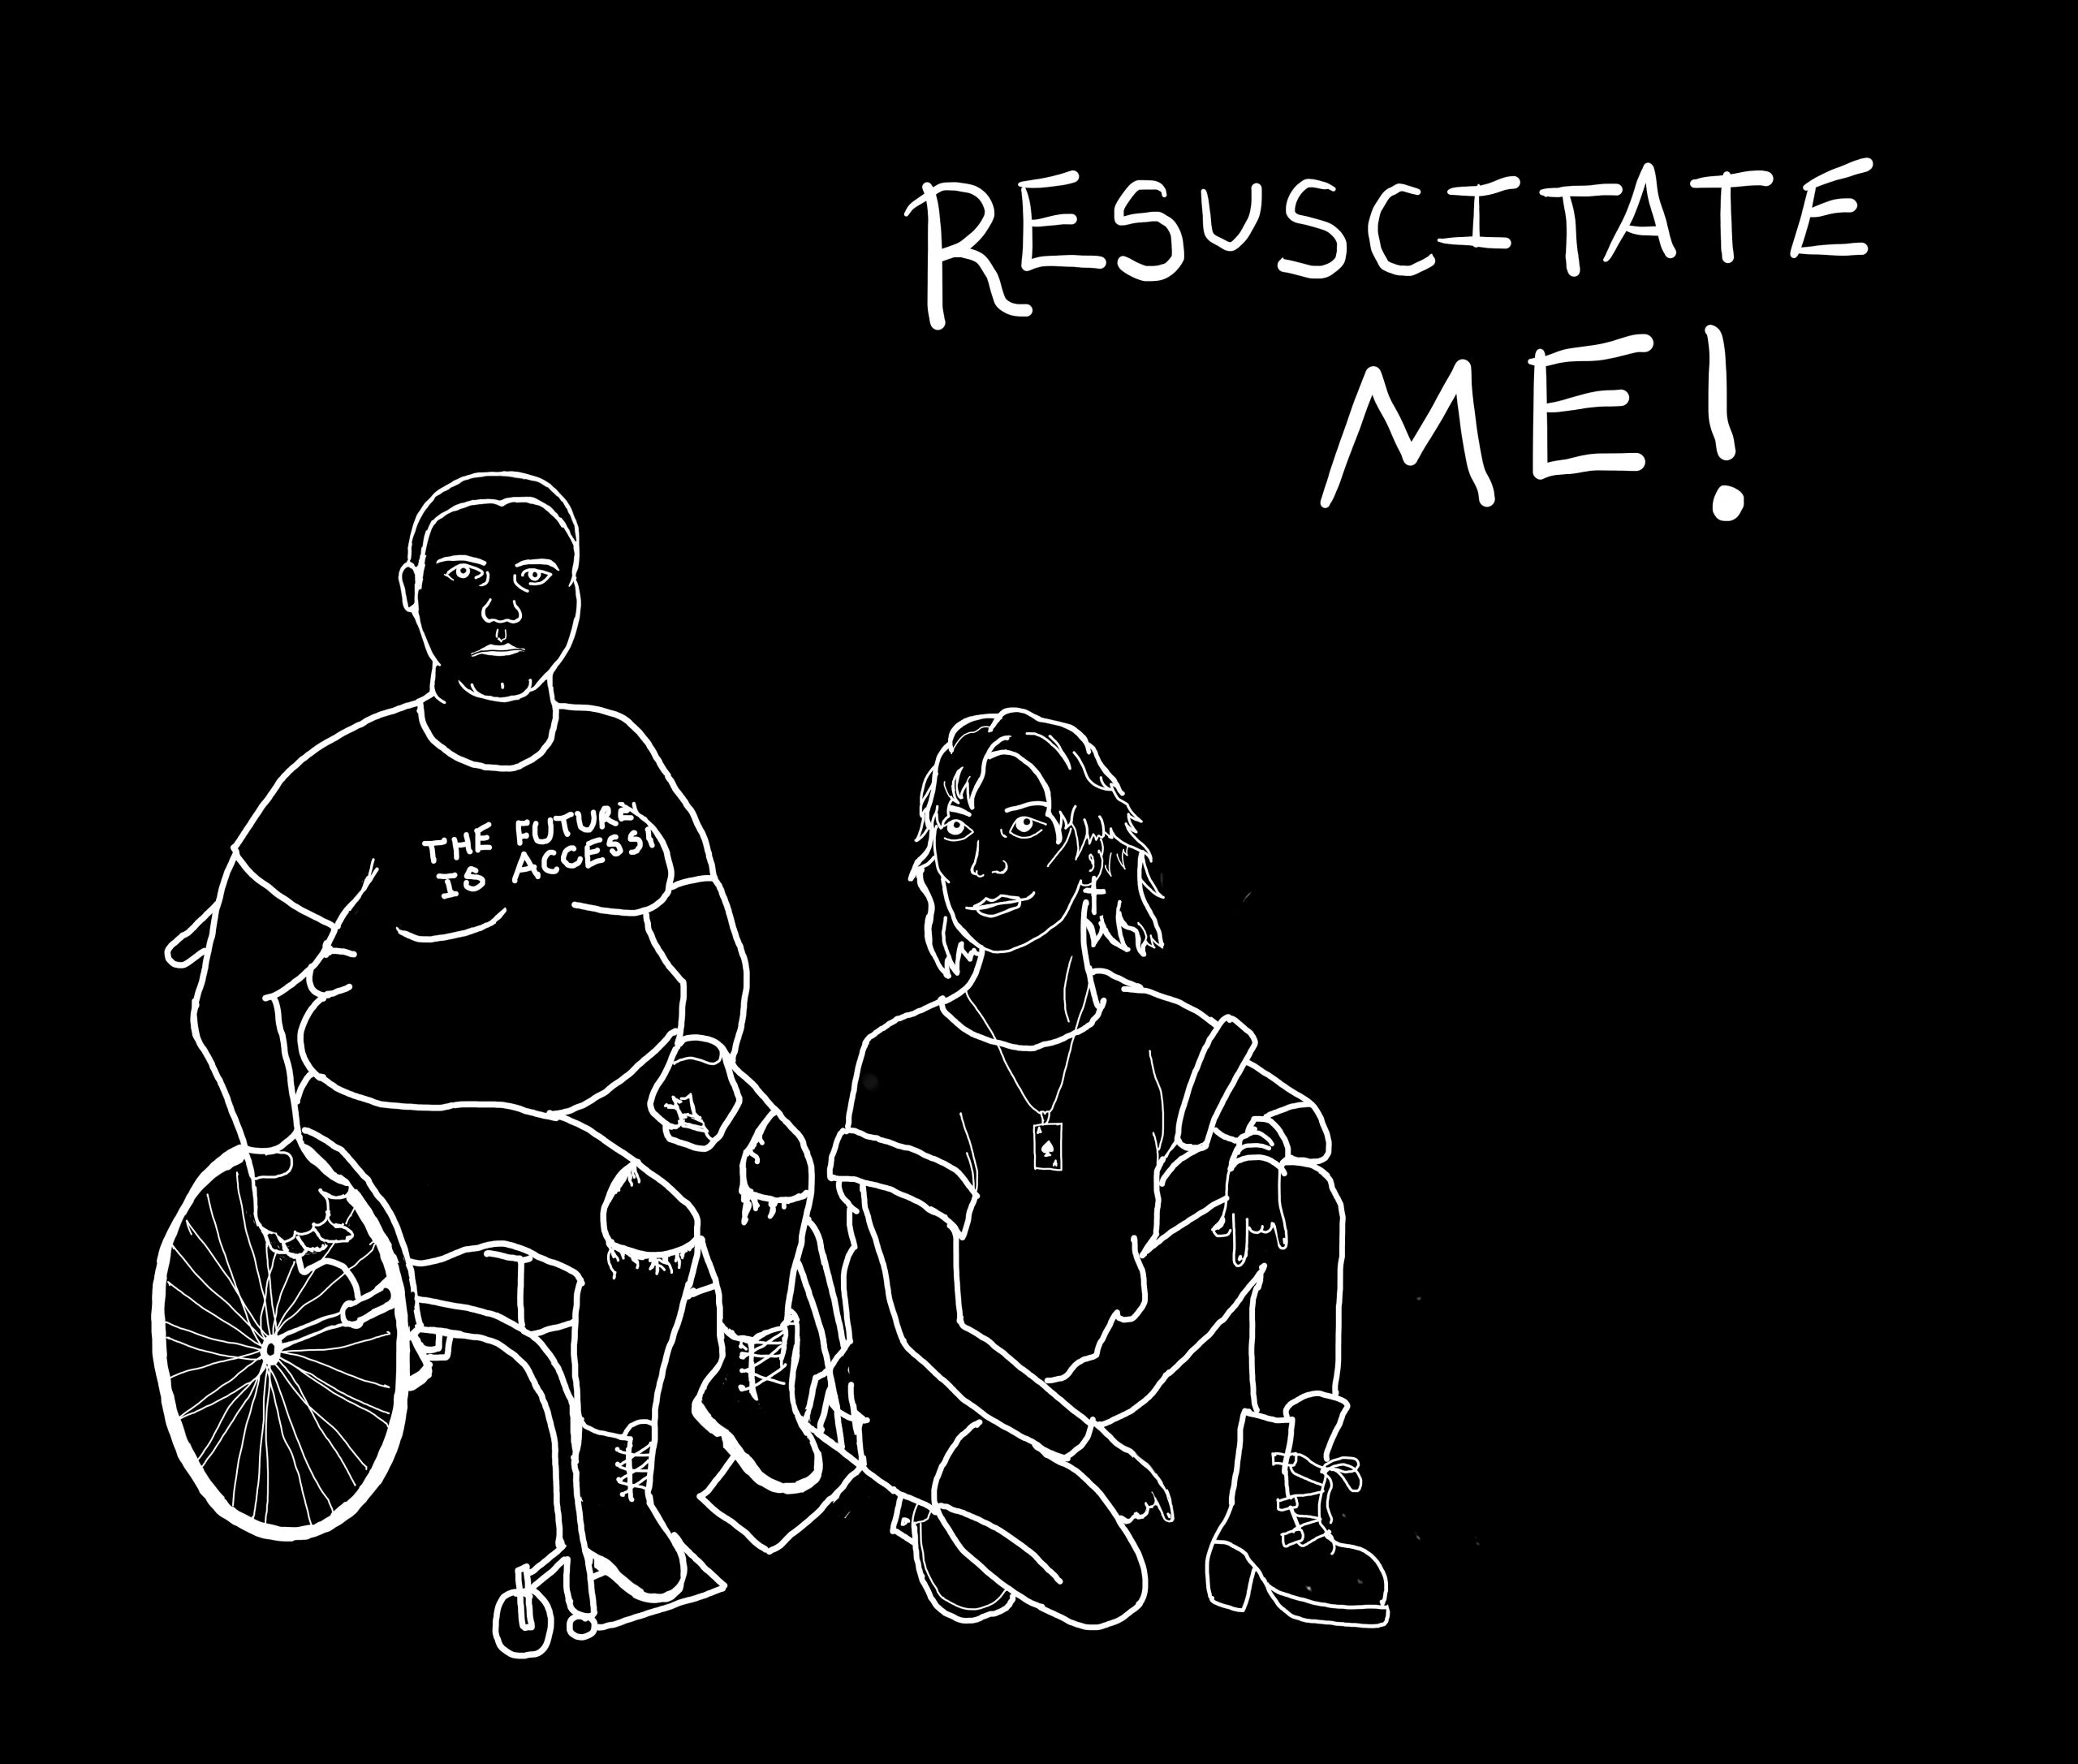 Resuscitate Me! by Katie Walters & Ace Ambrose